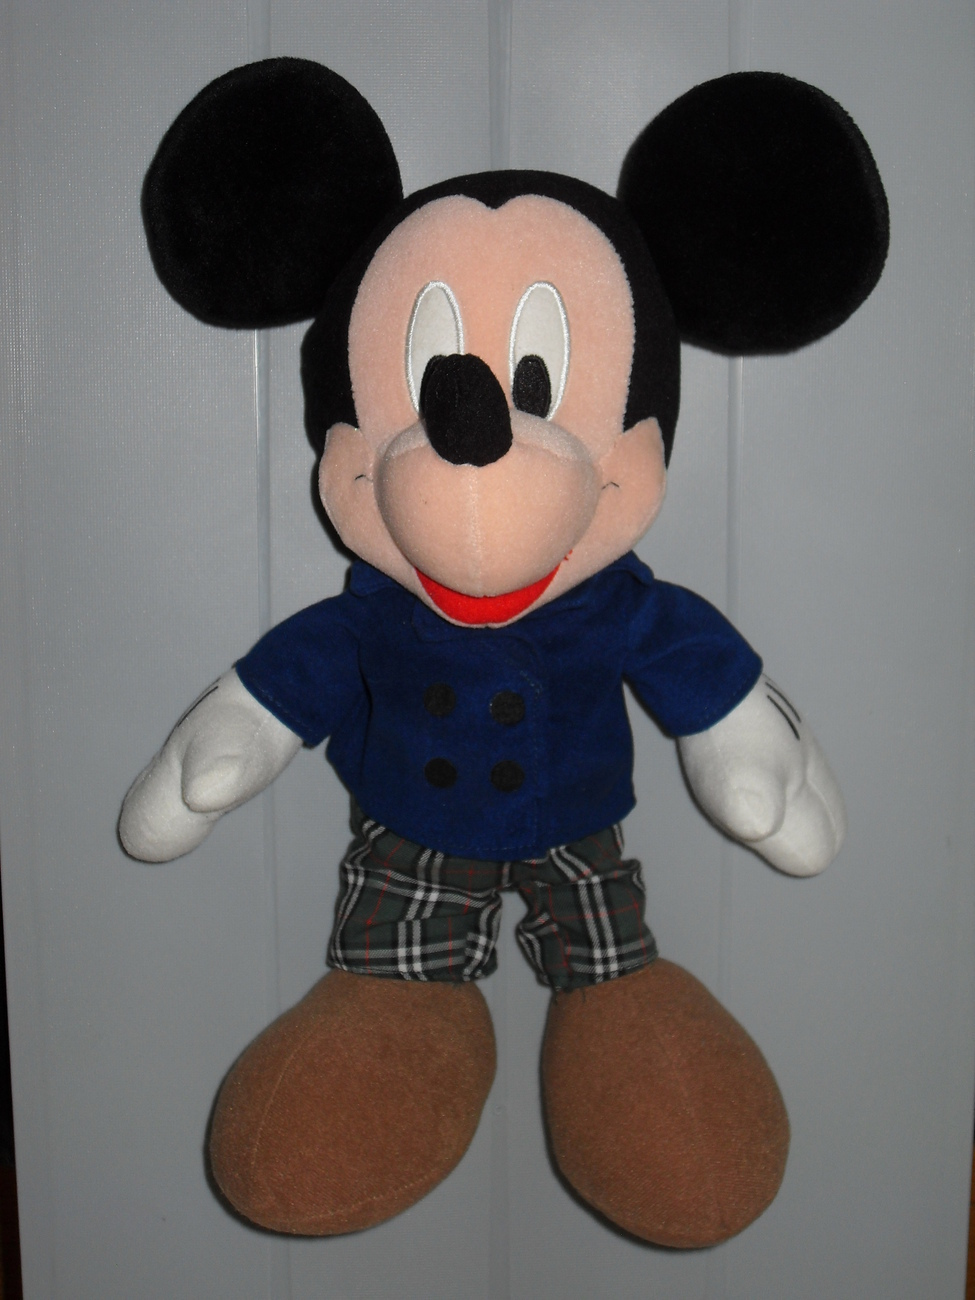 1999 Disney Sega Mickey Mouse Stuffed Toy